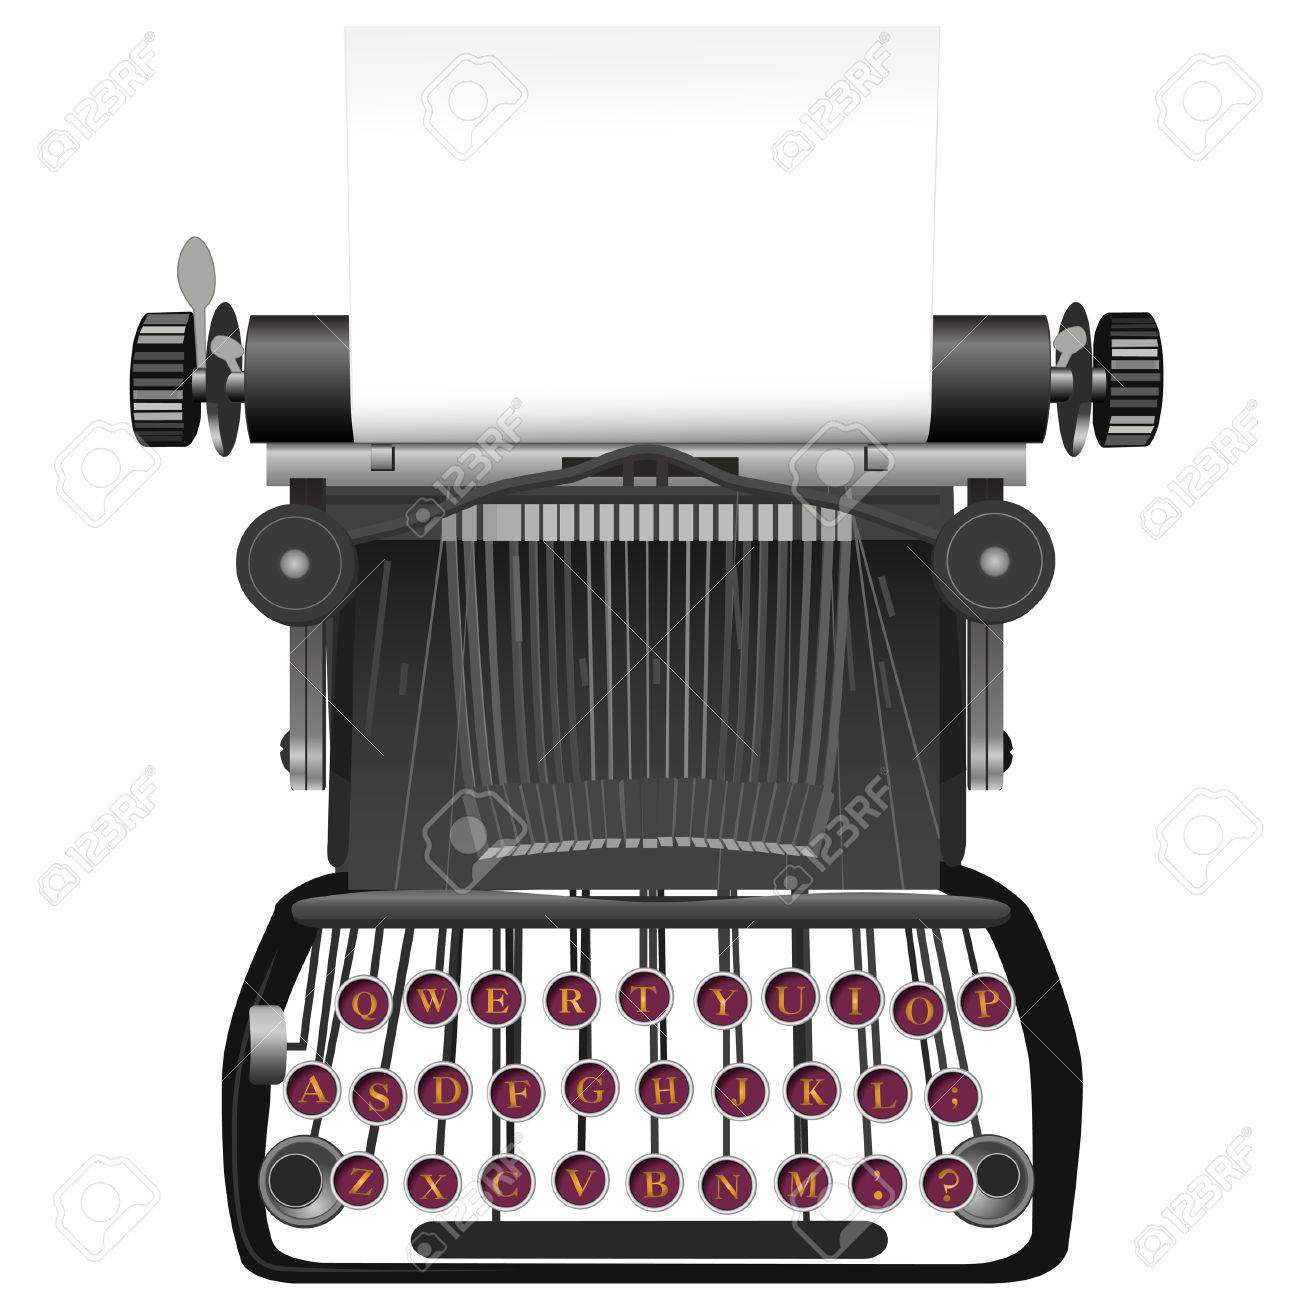 Type your copy on the copyspace paper in this vintage, antique typewriter illustration background. Stock Vector - 5024132